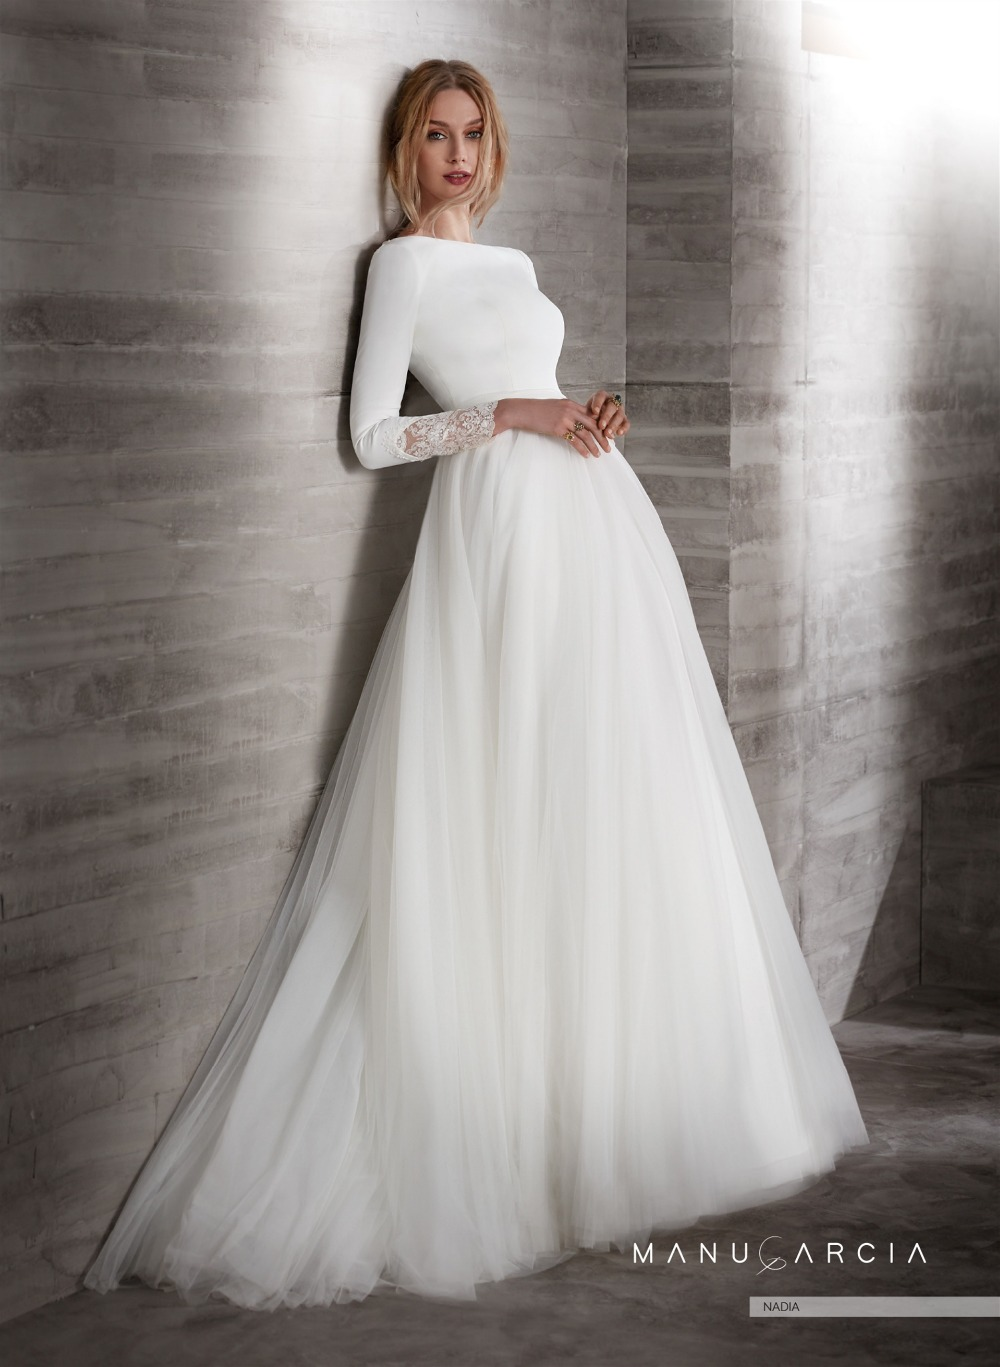 Us 187 53 8 Off 2019 New Simple Crepe Tulle Modest Wedding Dresses With 3 4 Sleeves Boat Neck Covered Back Country Western Sleeved Bridal Gowns In